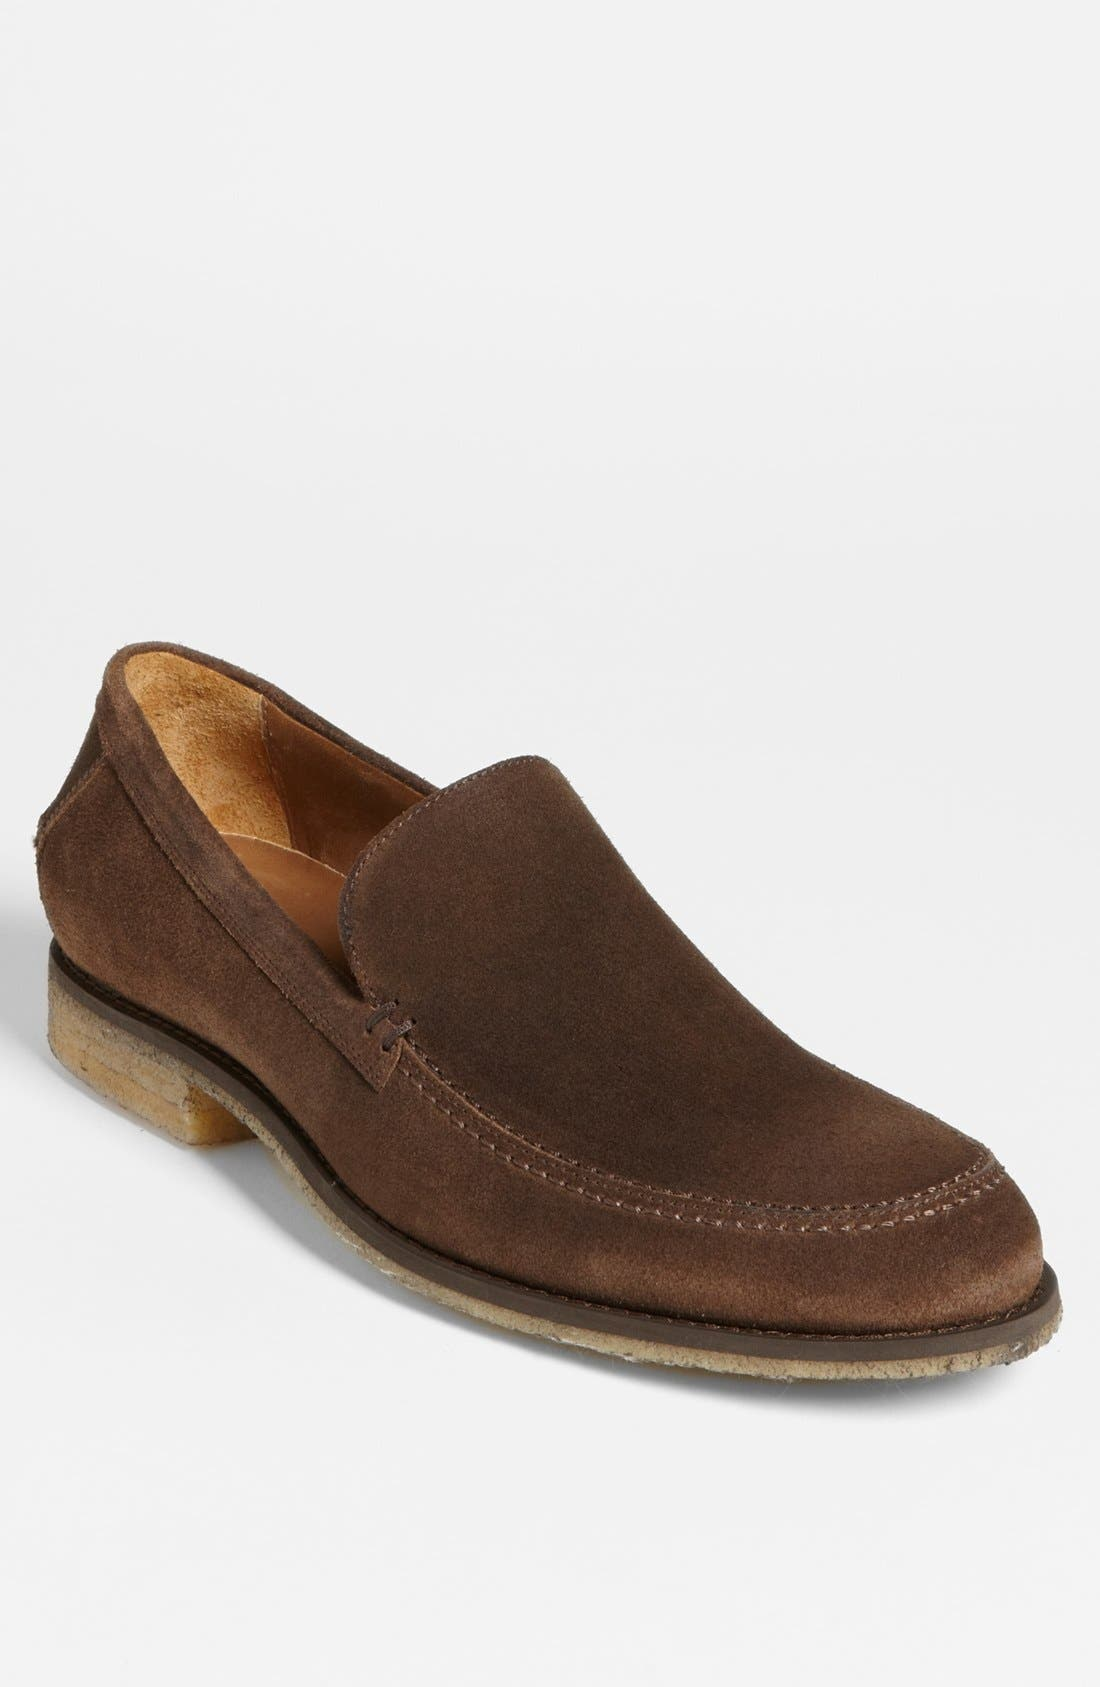 Alternate Image 1 Selected - John Varvatos Collection 'Monaco' Venetian Loafer